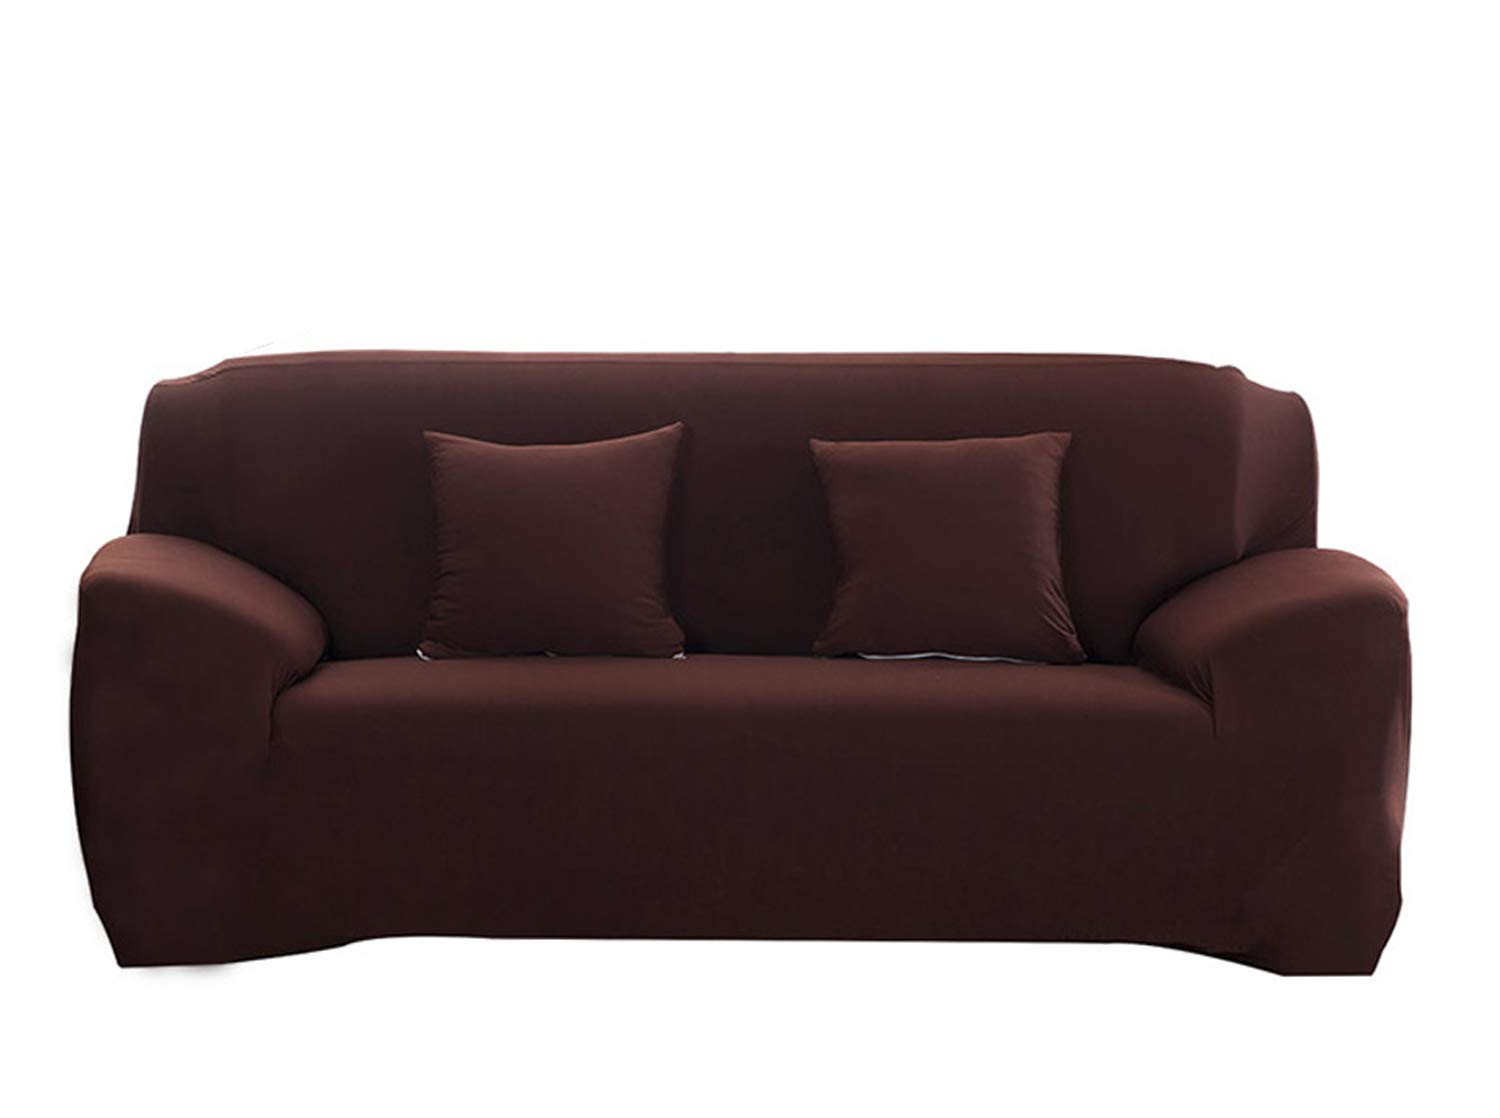 Hotniu Stretch Sofa Slipcover 1 Piece Polyester Spandex Fabric Couch Cover Fitted Furniture Slipcovers for Loveseat and Sofas (Loveseat, Coffee)